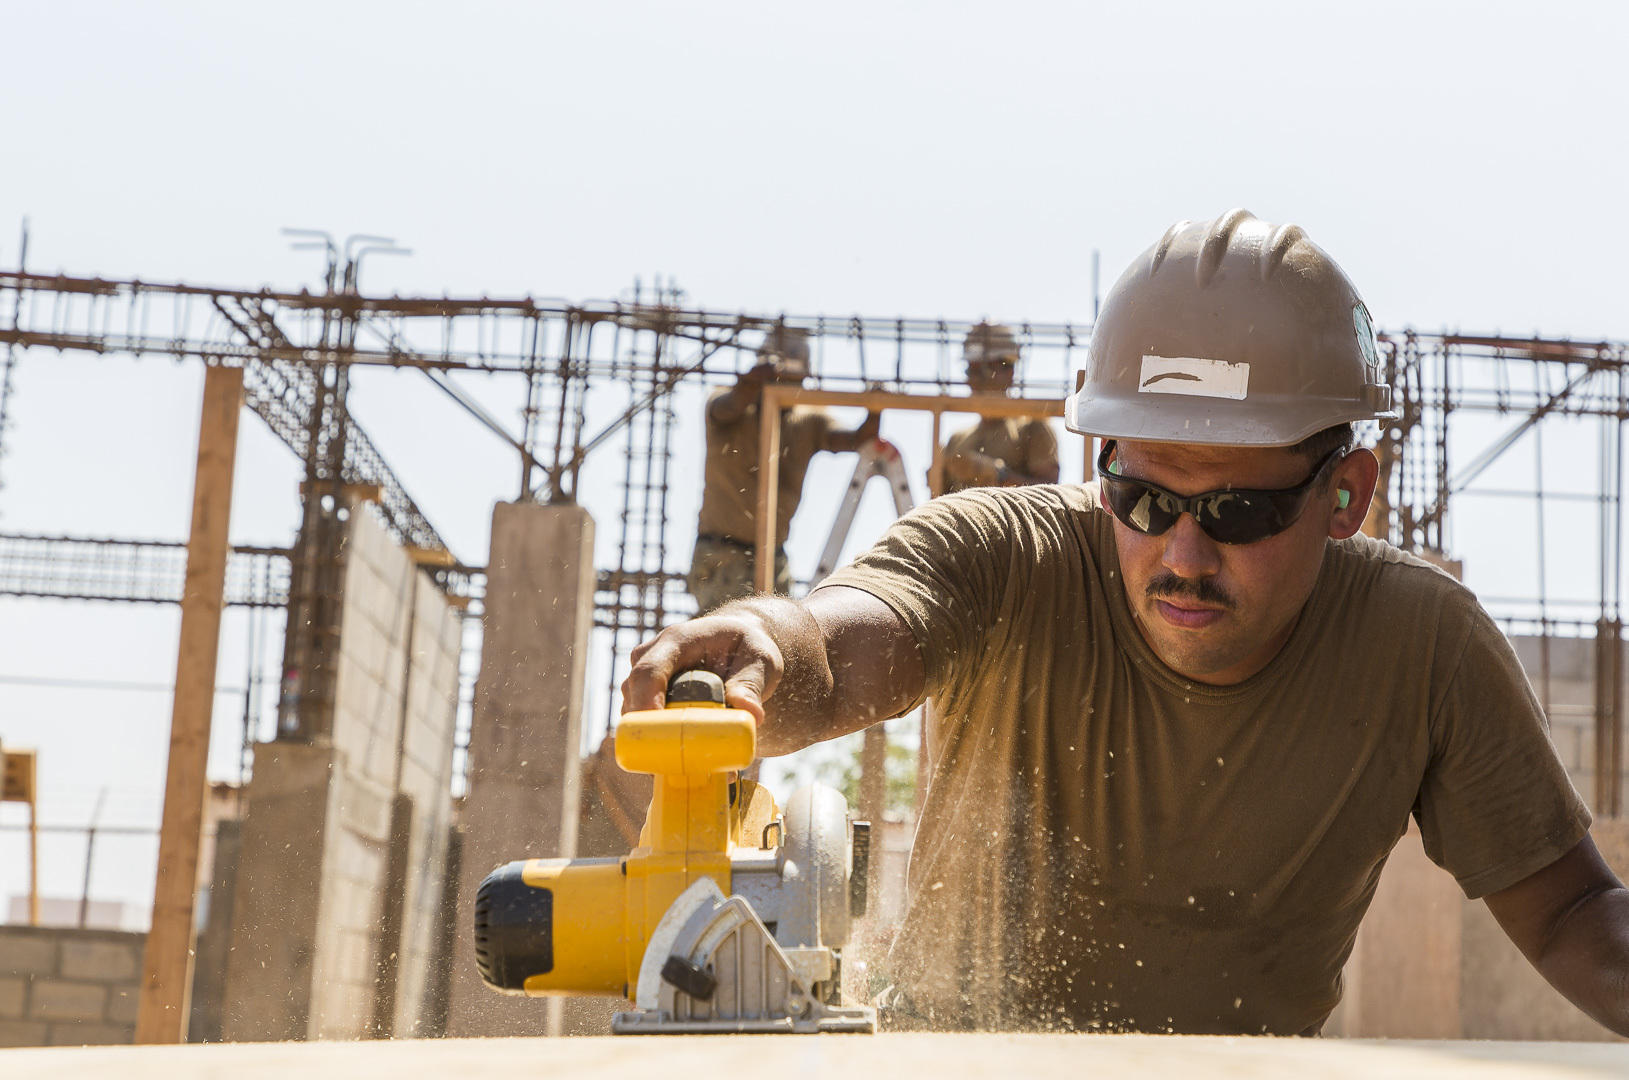 U.S. Navy Equipment Operator 1st Class Ryan Bright, a Seabee assigned to Naval Mobile Construction Battalion 1 Detachment Horn of Africa (NMCB 1 Det HOA) cuts plywood for living quarters at Ali Oune, Djibouti, Sept. 19, 2018. Seabees with NMCB 1 Det-HOA are building a medical facility in Ali Oune in support of the Ministry of Health for Djibouti. (U.S. Air National Guard photo by Master Sgt. Andrew Sinclair)